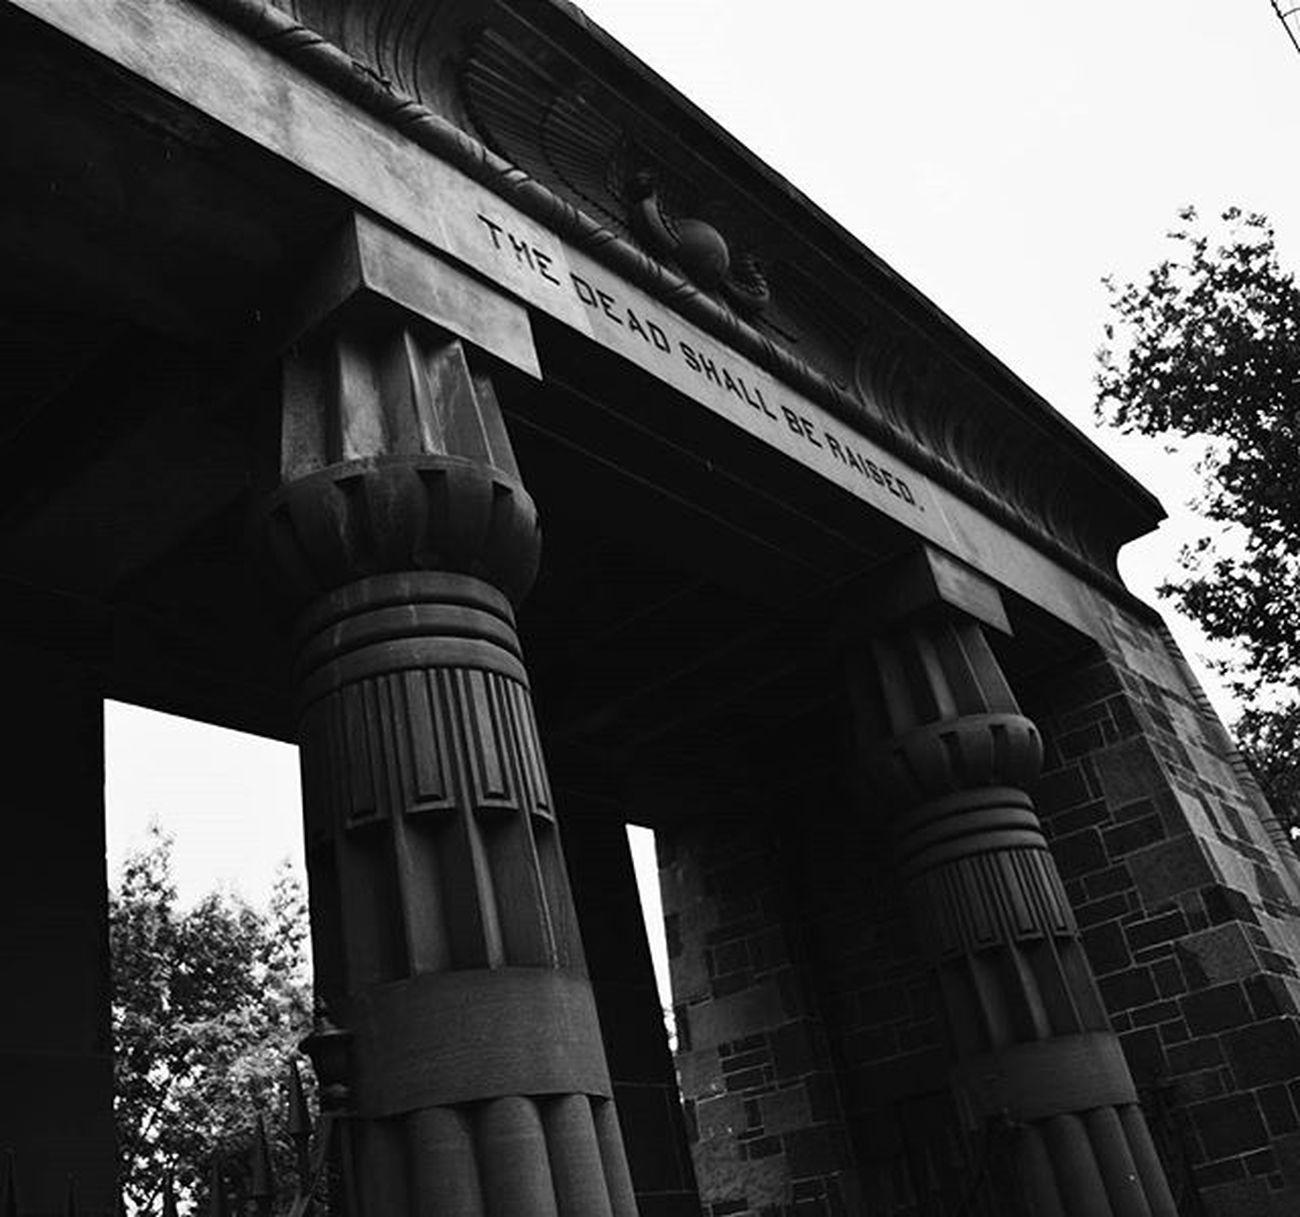 Cemetery Stone Brick Death ANGST Newhaven Perspective Architecture Columns Bnw_life Bnw_planet Bnw_rose Bnw_society Bnw Bnw_captures Bnw_photo Vscophile Vscophile Vsco_hub VSCO Vscocam Vscolove Vscolife Nikon D3300 yale ivyleague